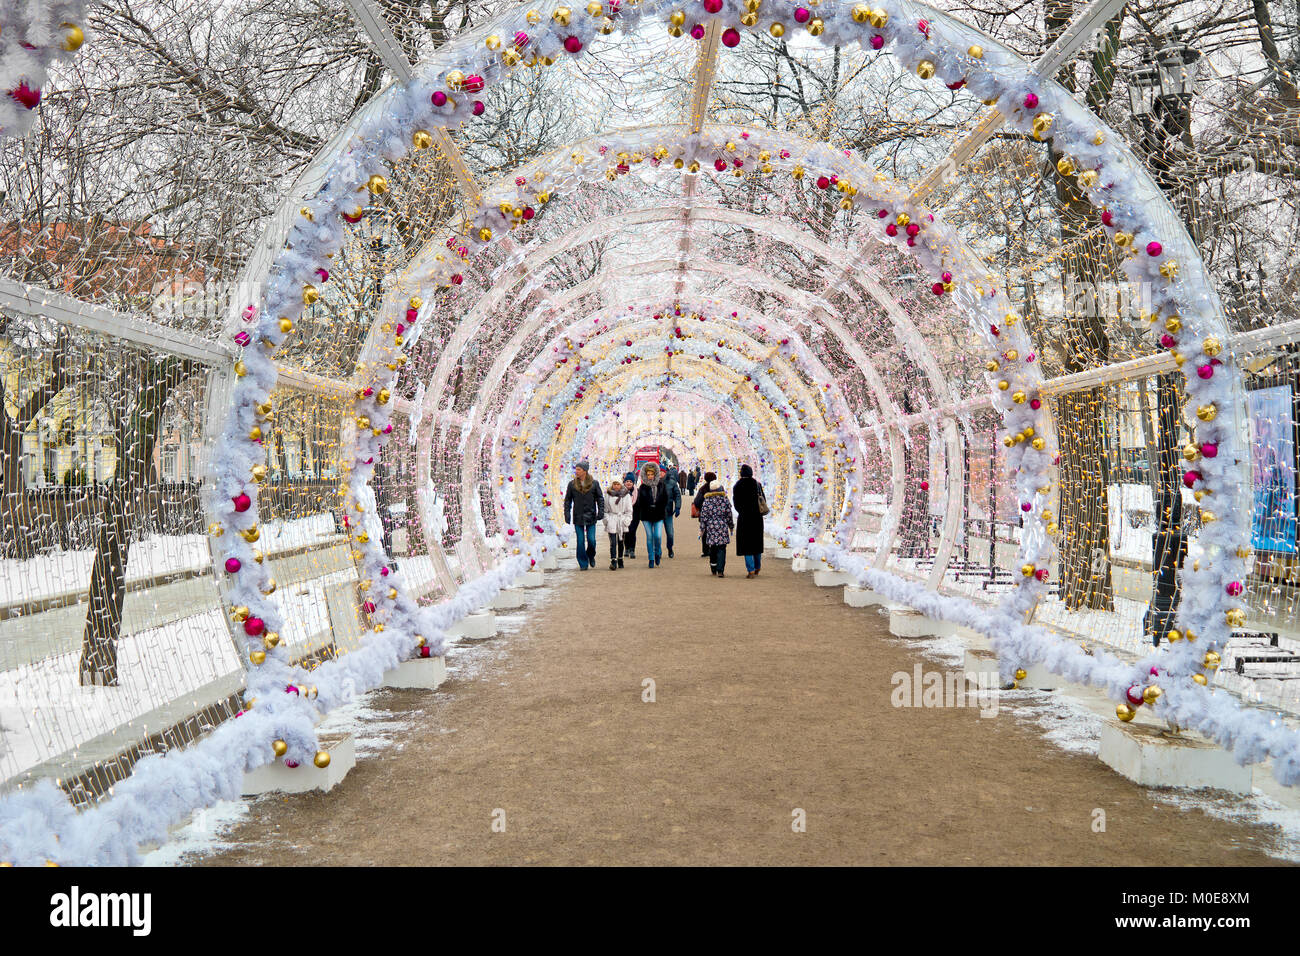 MOSCOW, RUSSIA - January 13.2018: Light tunnel on Tverskoy Boulevard. A Christmas tunnel with colorful glowing lights - Stock Image